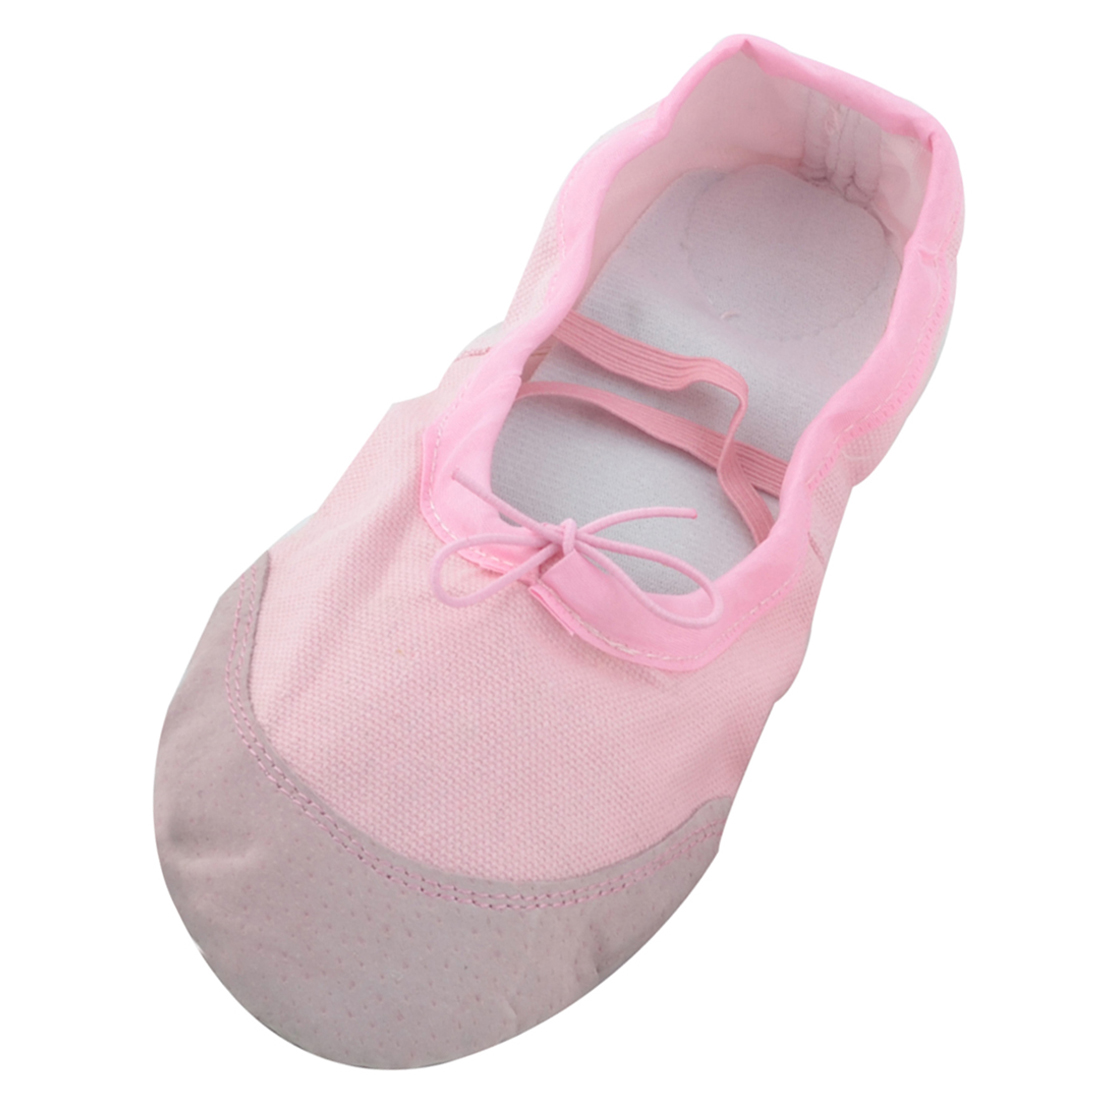 Lady Soft Canvas Elastic Cross Bands Flat Ballet Dancing Shoes Pink Size 41 Pair